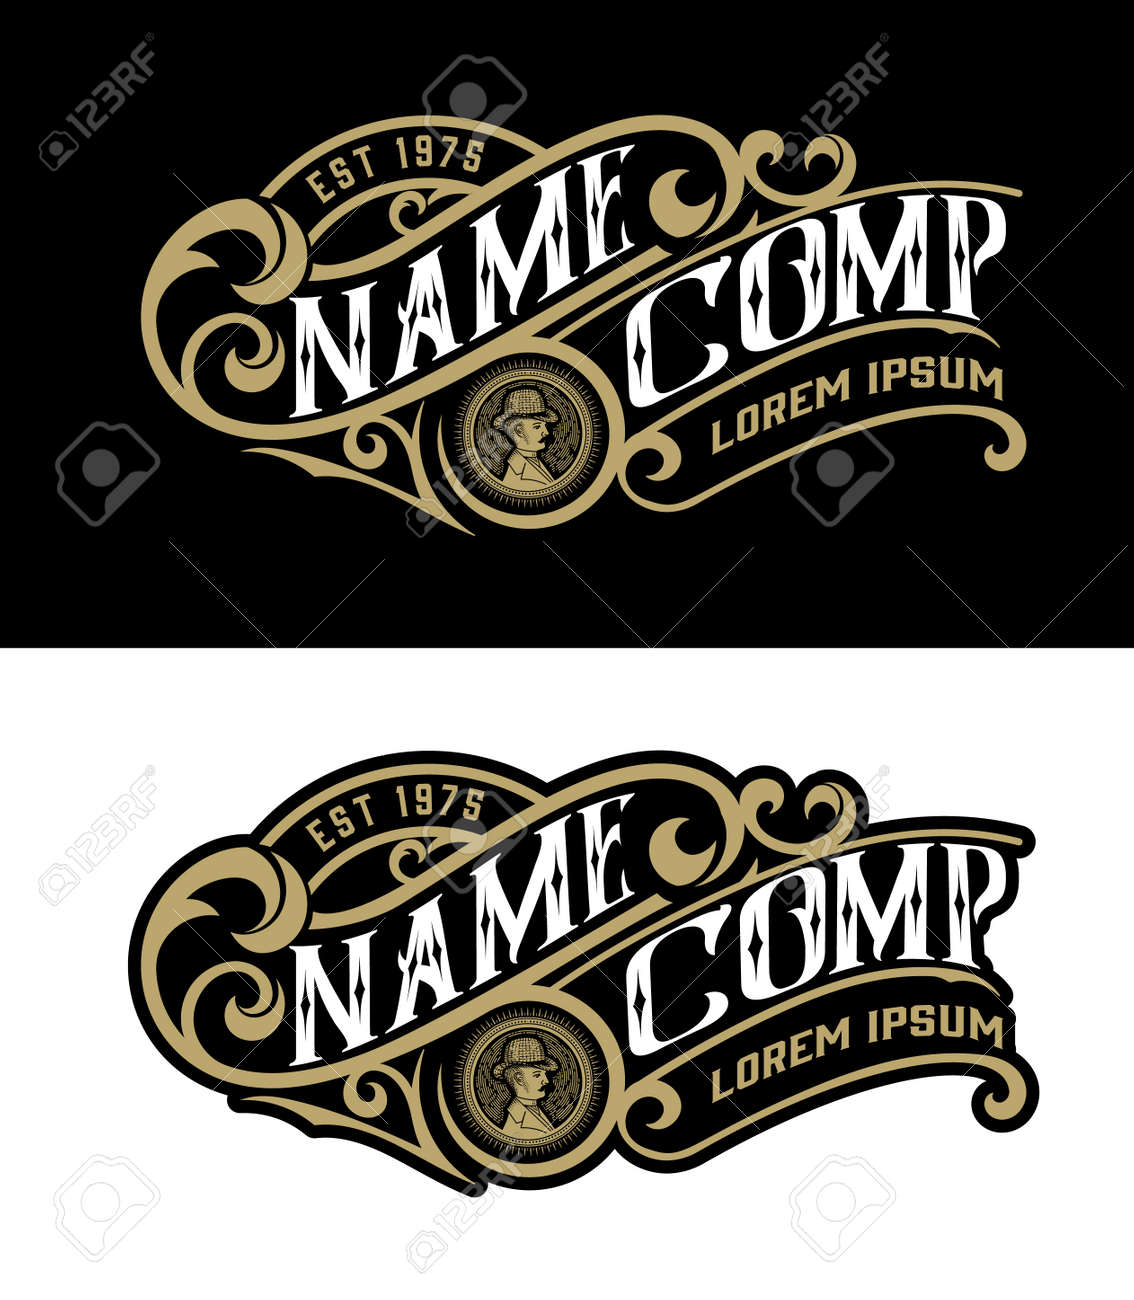 Vintage logo template. Vector layered - 125149049